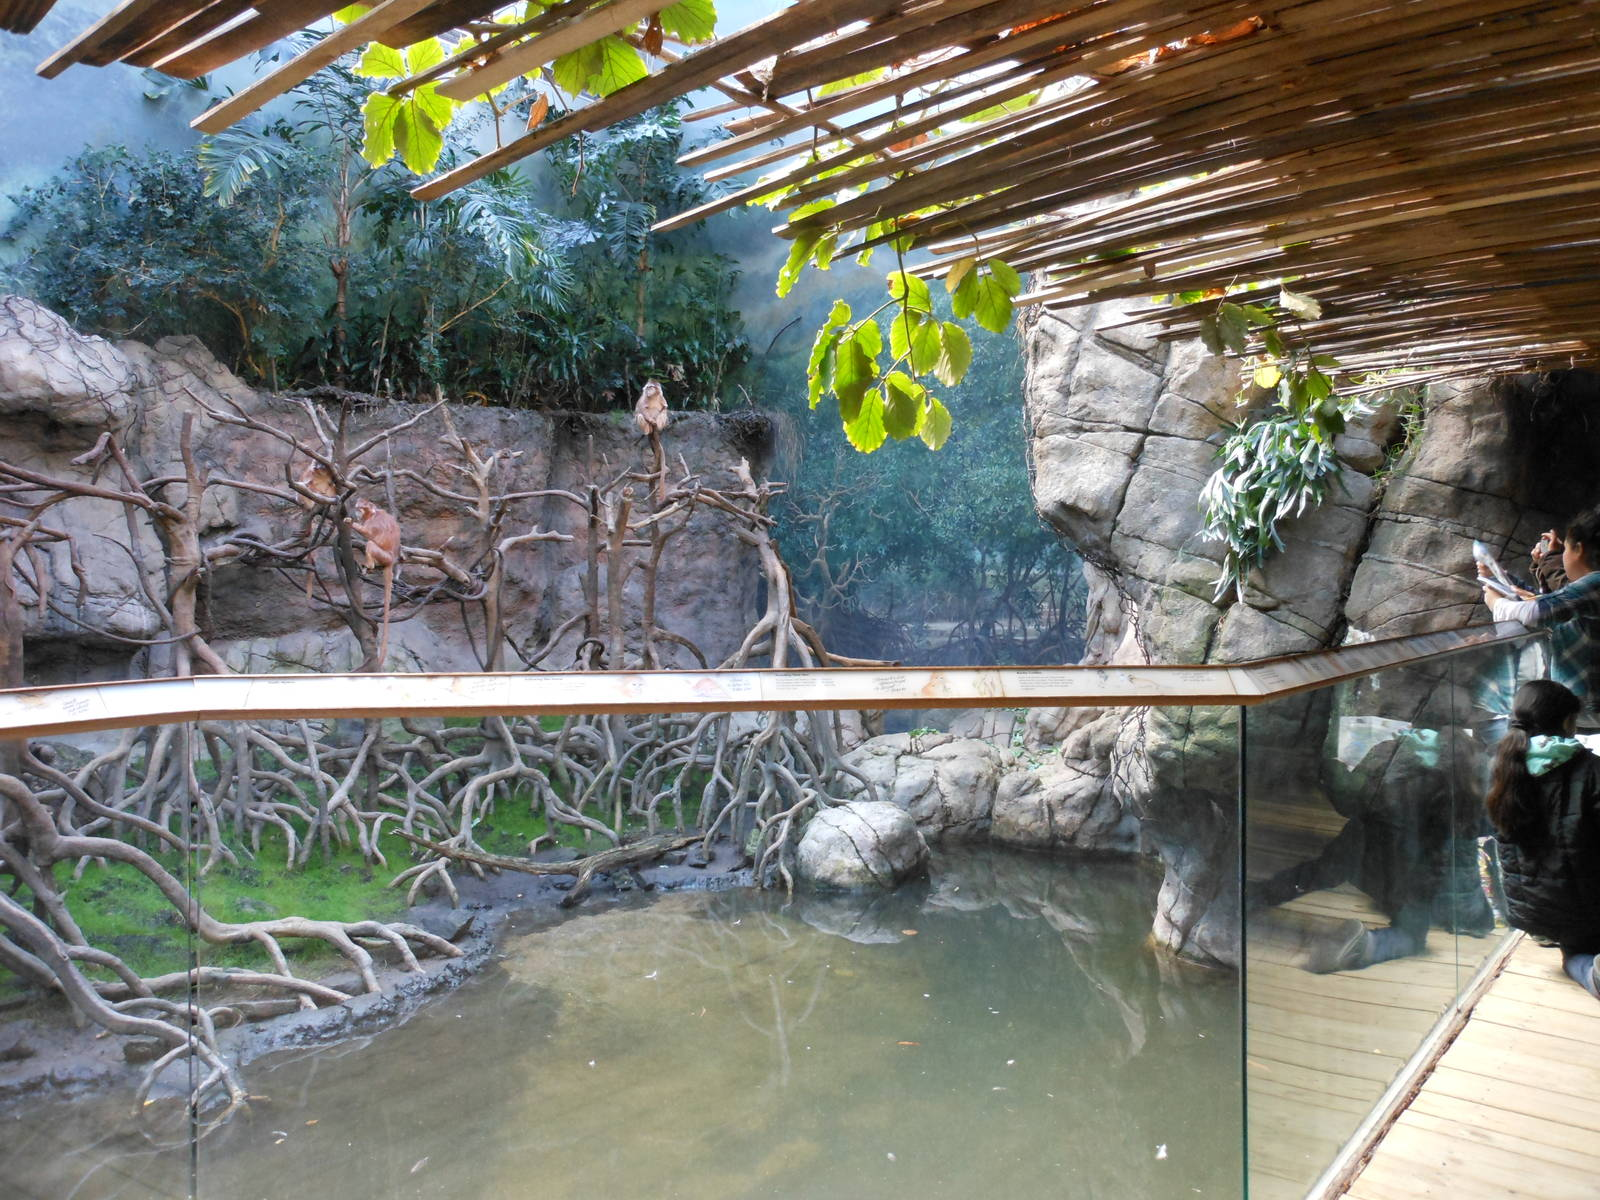 Jungle World Exhibit 031215 Zoochat - Year of Clean Water